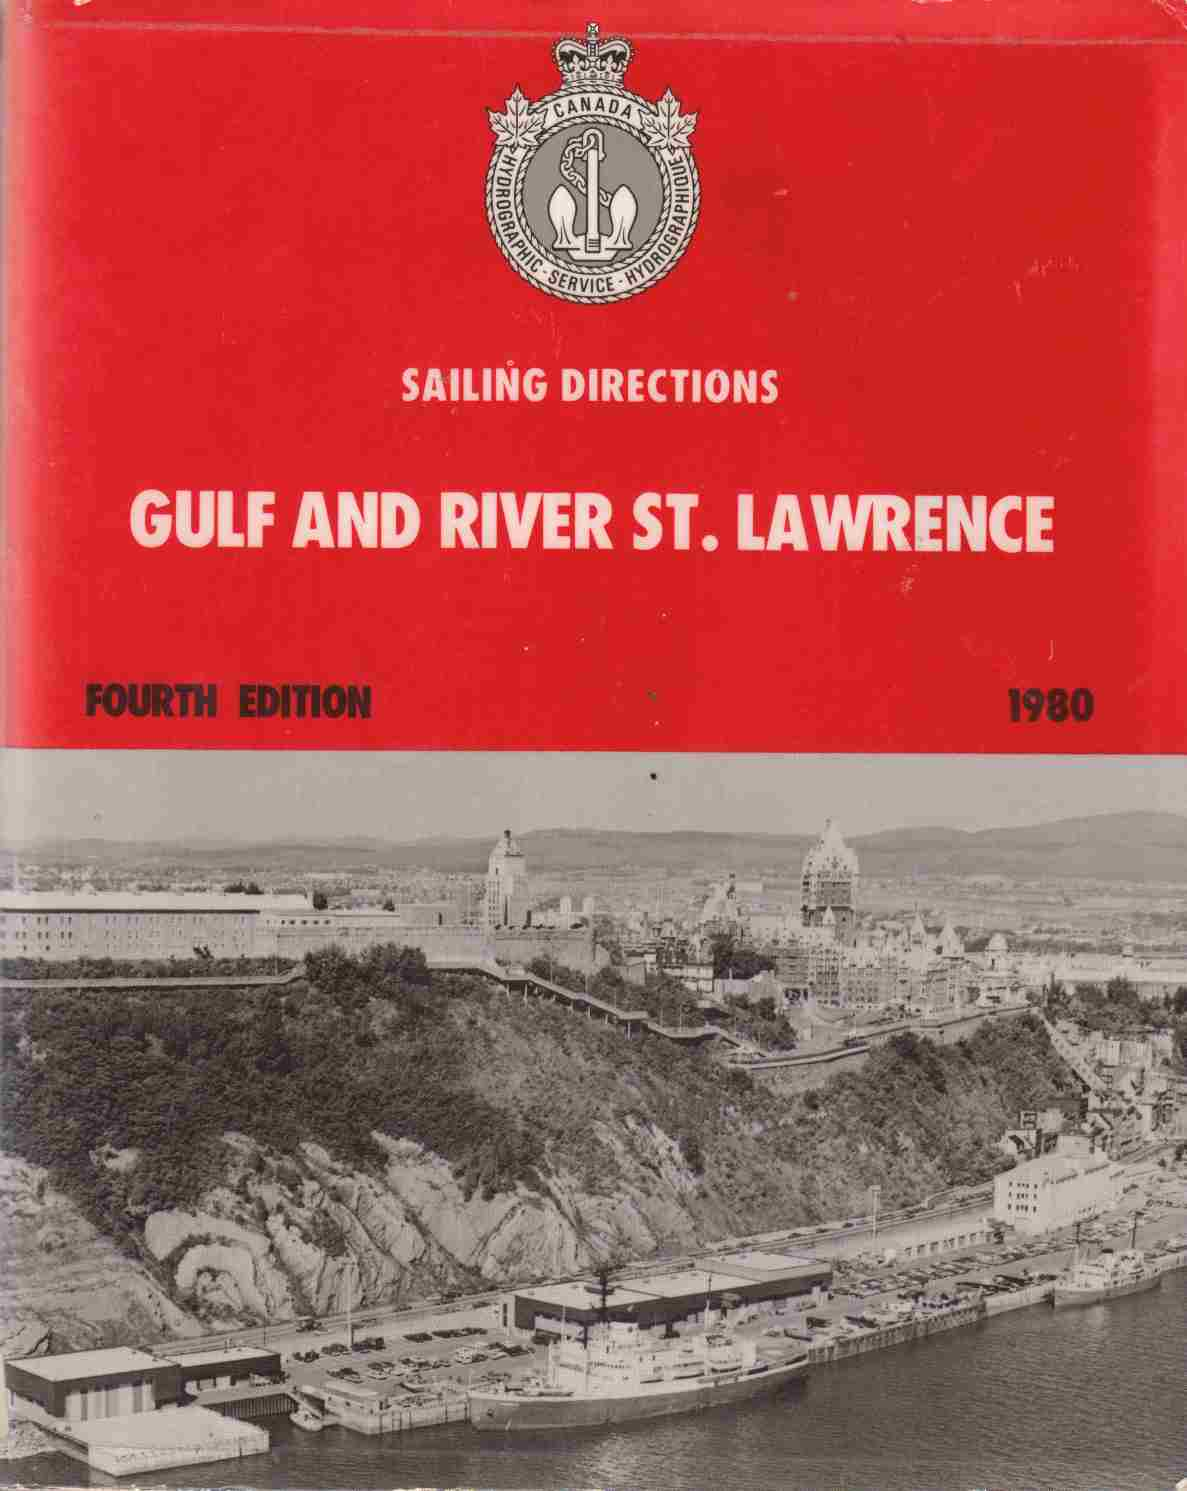 Image for Sailing Directions Gulf and River St. Lawrence Fourth Edition 1980